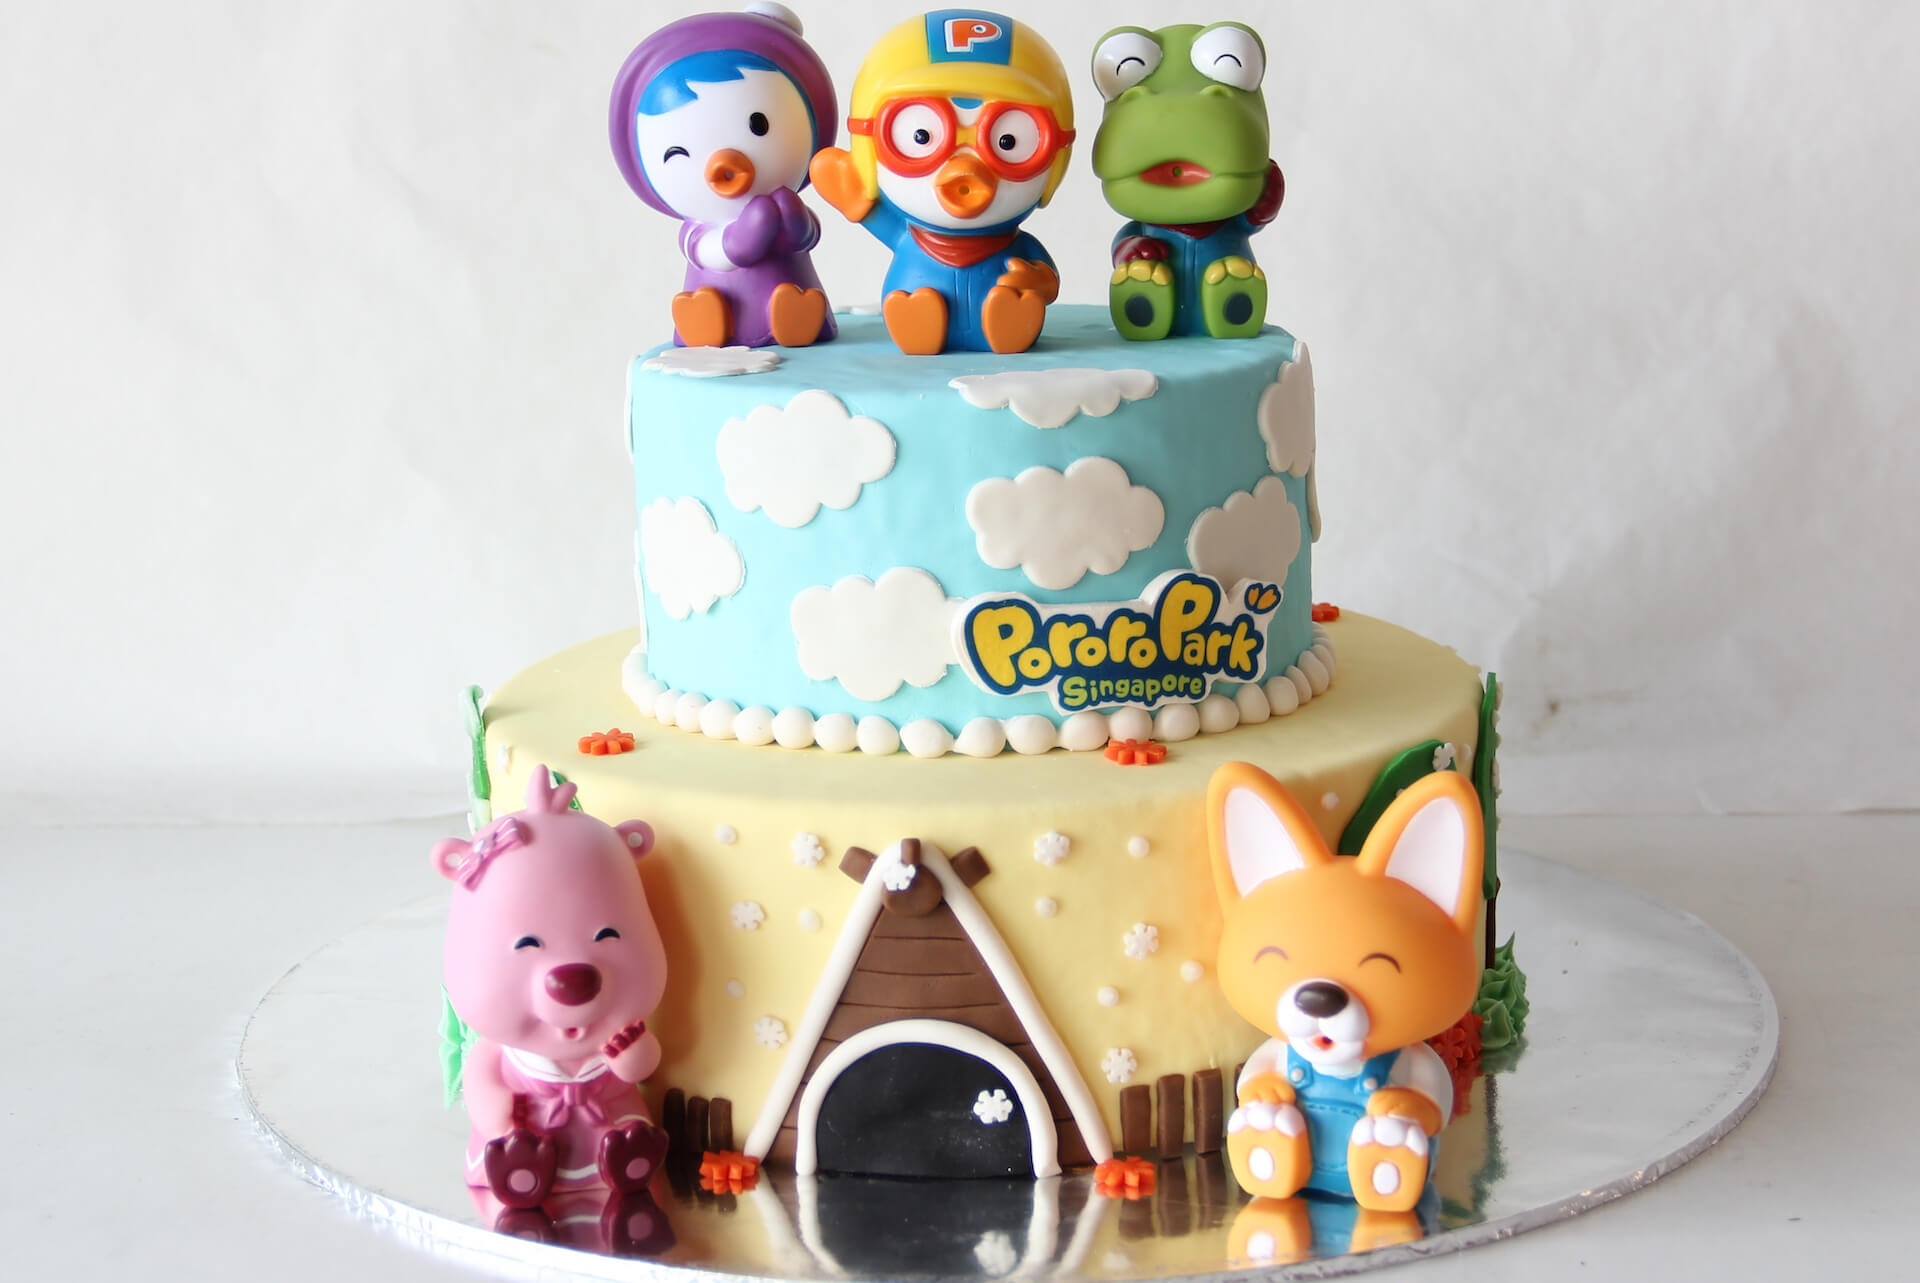 Birthday Party Add-Ons - Cake | Pororo Park Singapore